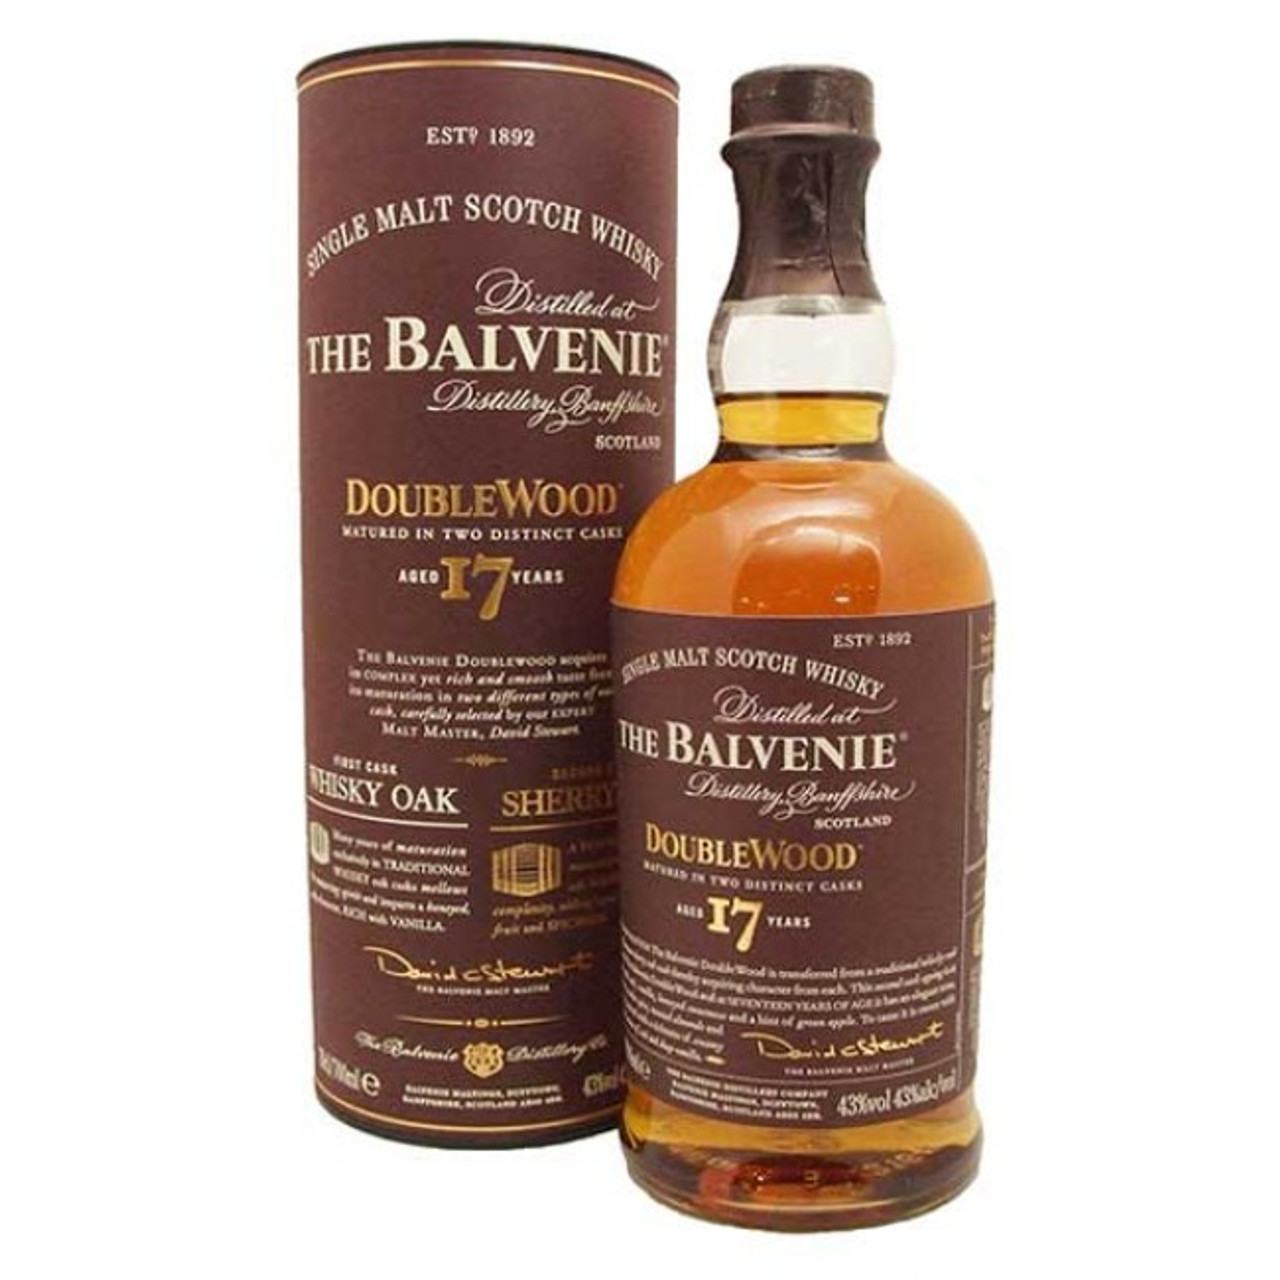 Balvenie 17 Year Doublewood Single Malt Scotch Whisky 750ml